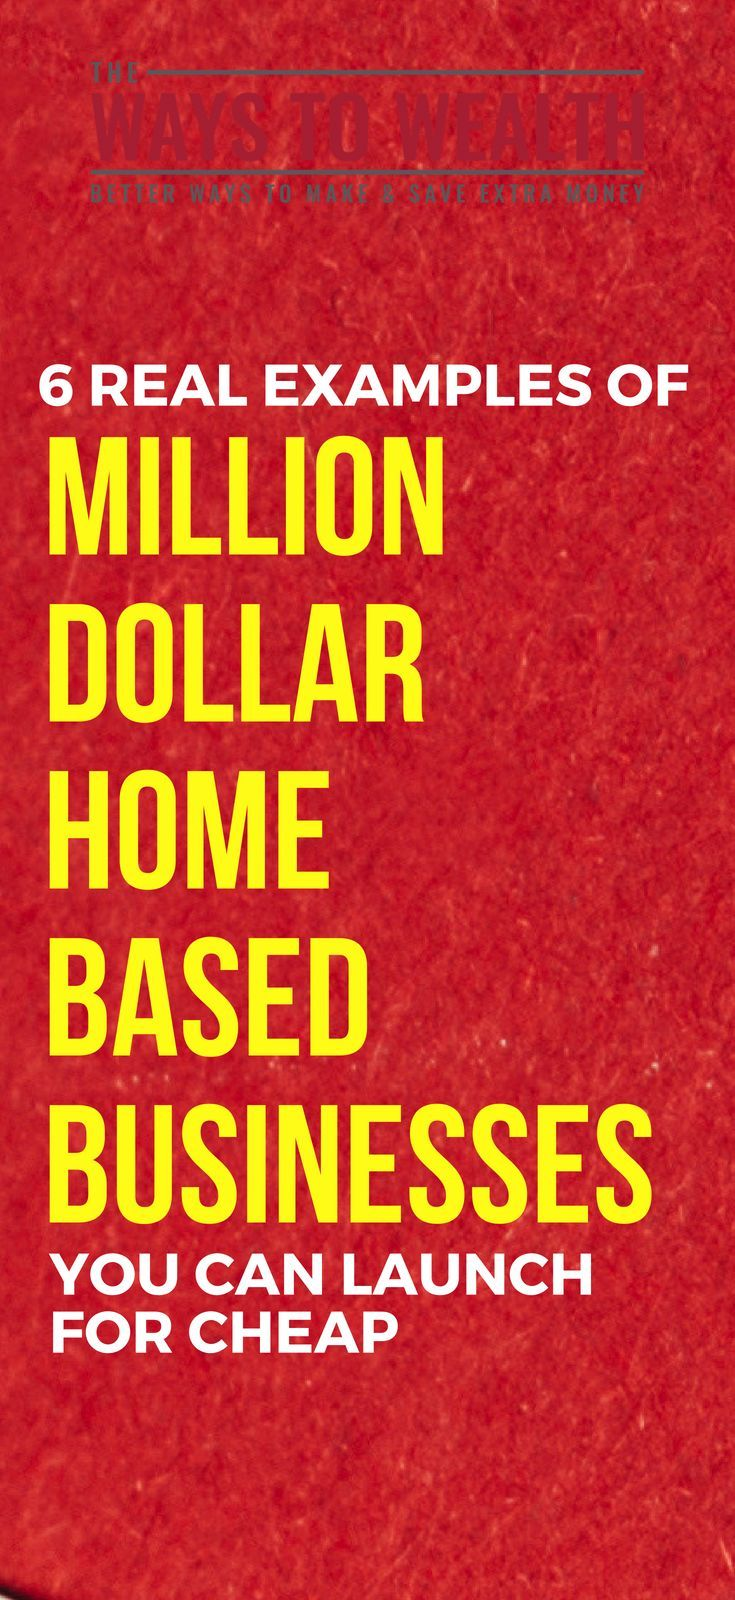 6 Examples Of Million Dollar Home Based Businesses Organizing Money Pinterest Business Opportunities And Start Up